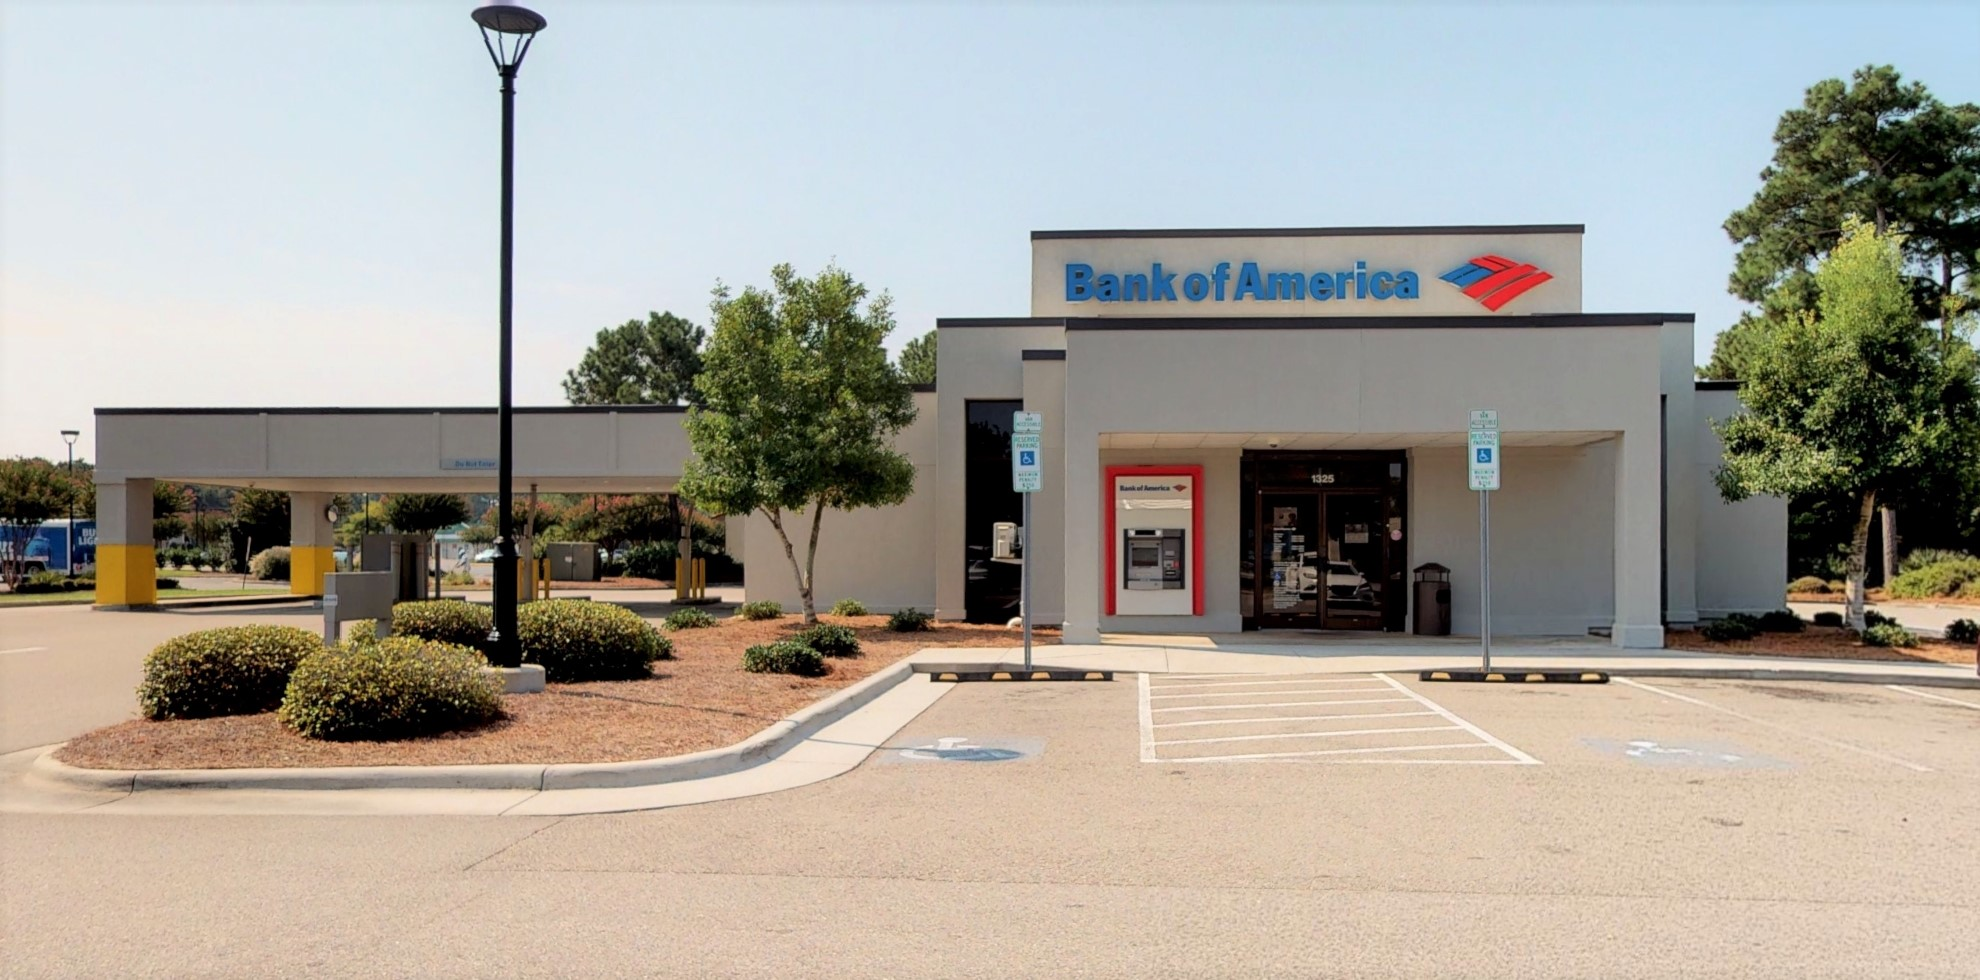 Bank of America financial center with drive-thru ATM and teller | 1325 Military Cutoff Rd, Wilmington, NC 28405